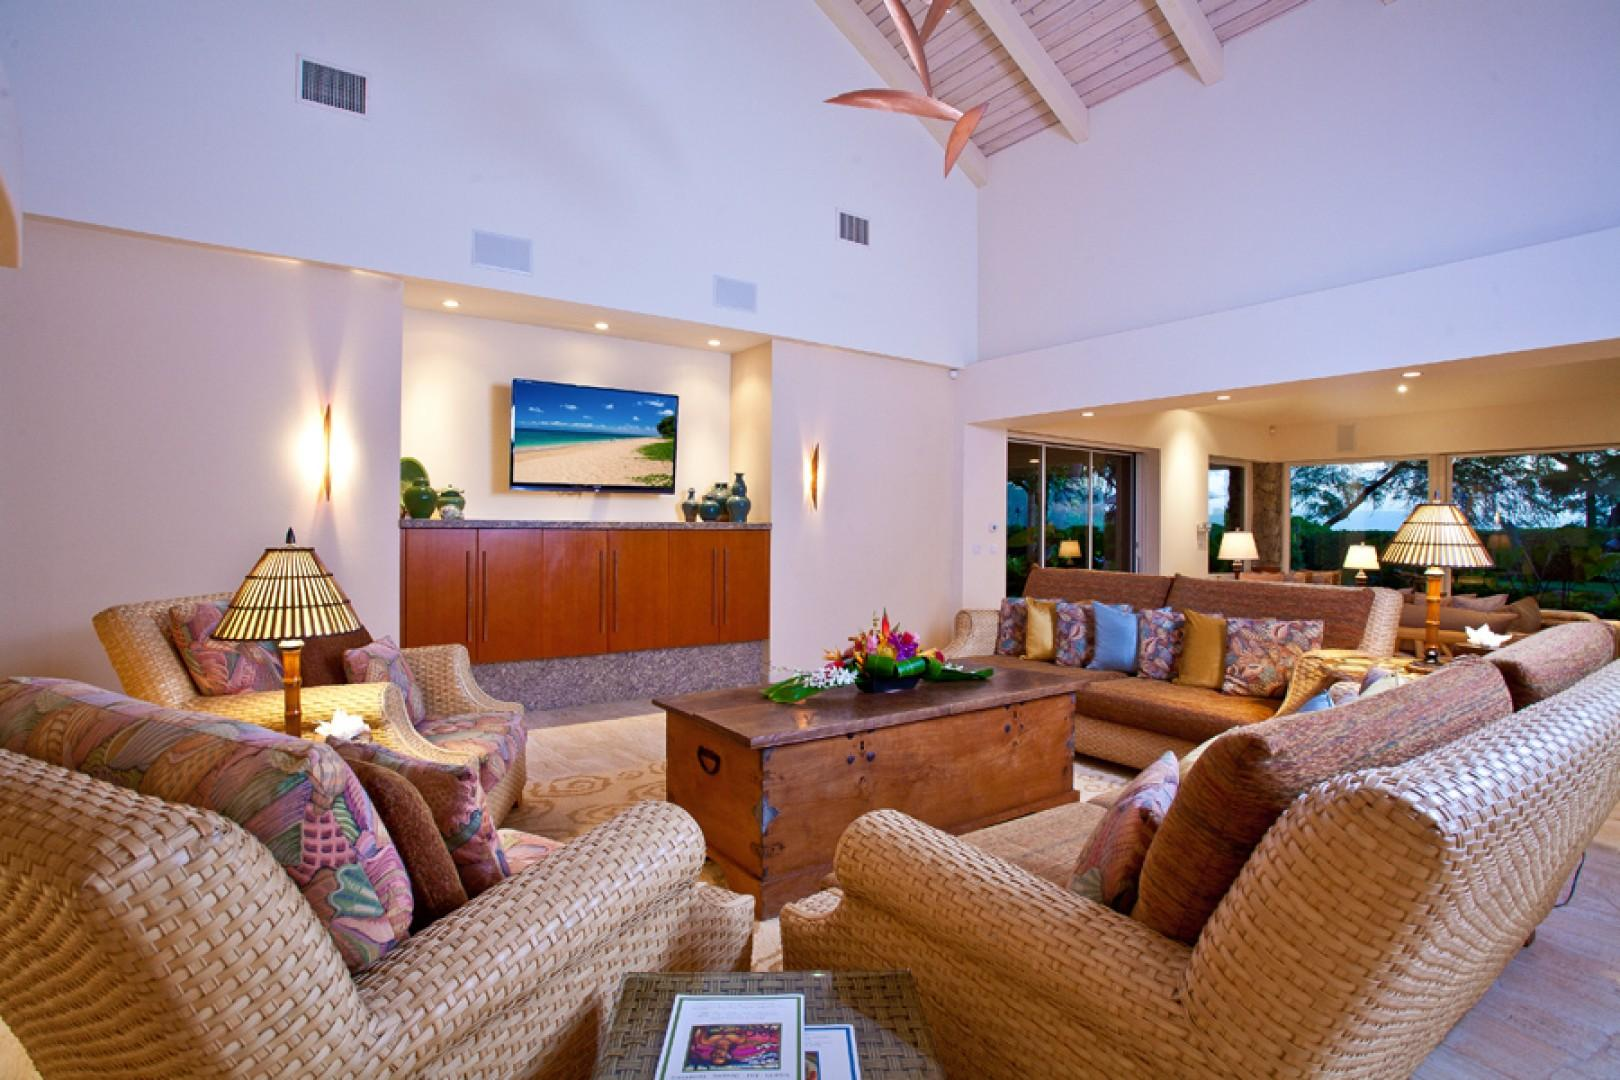 Sea Shells Beach House - The Great Room with Vaulted Ceiling and New 60